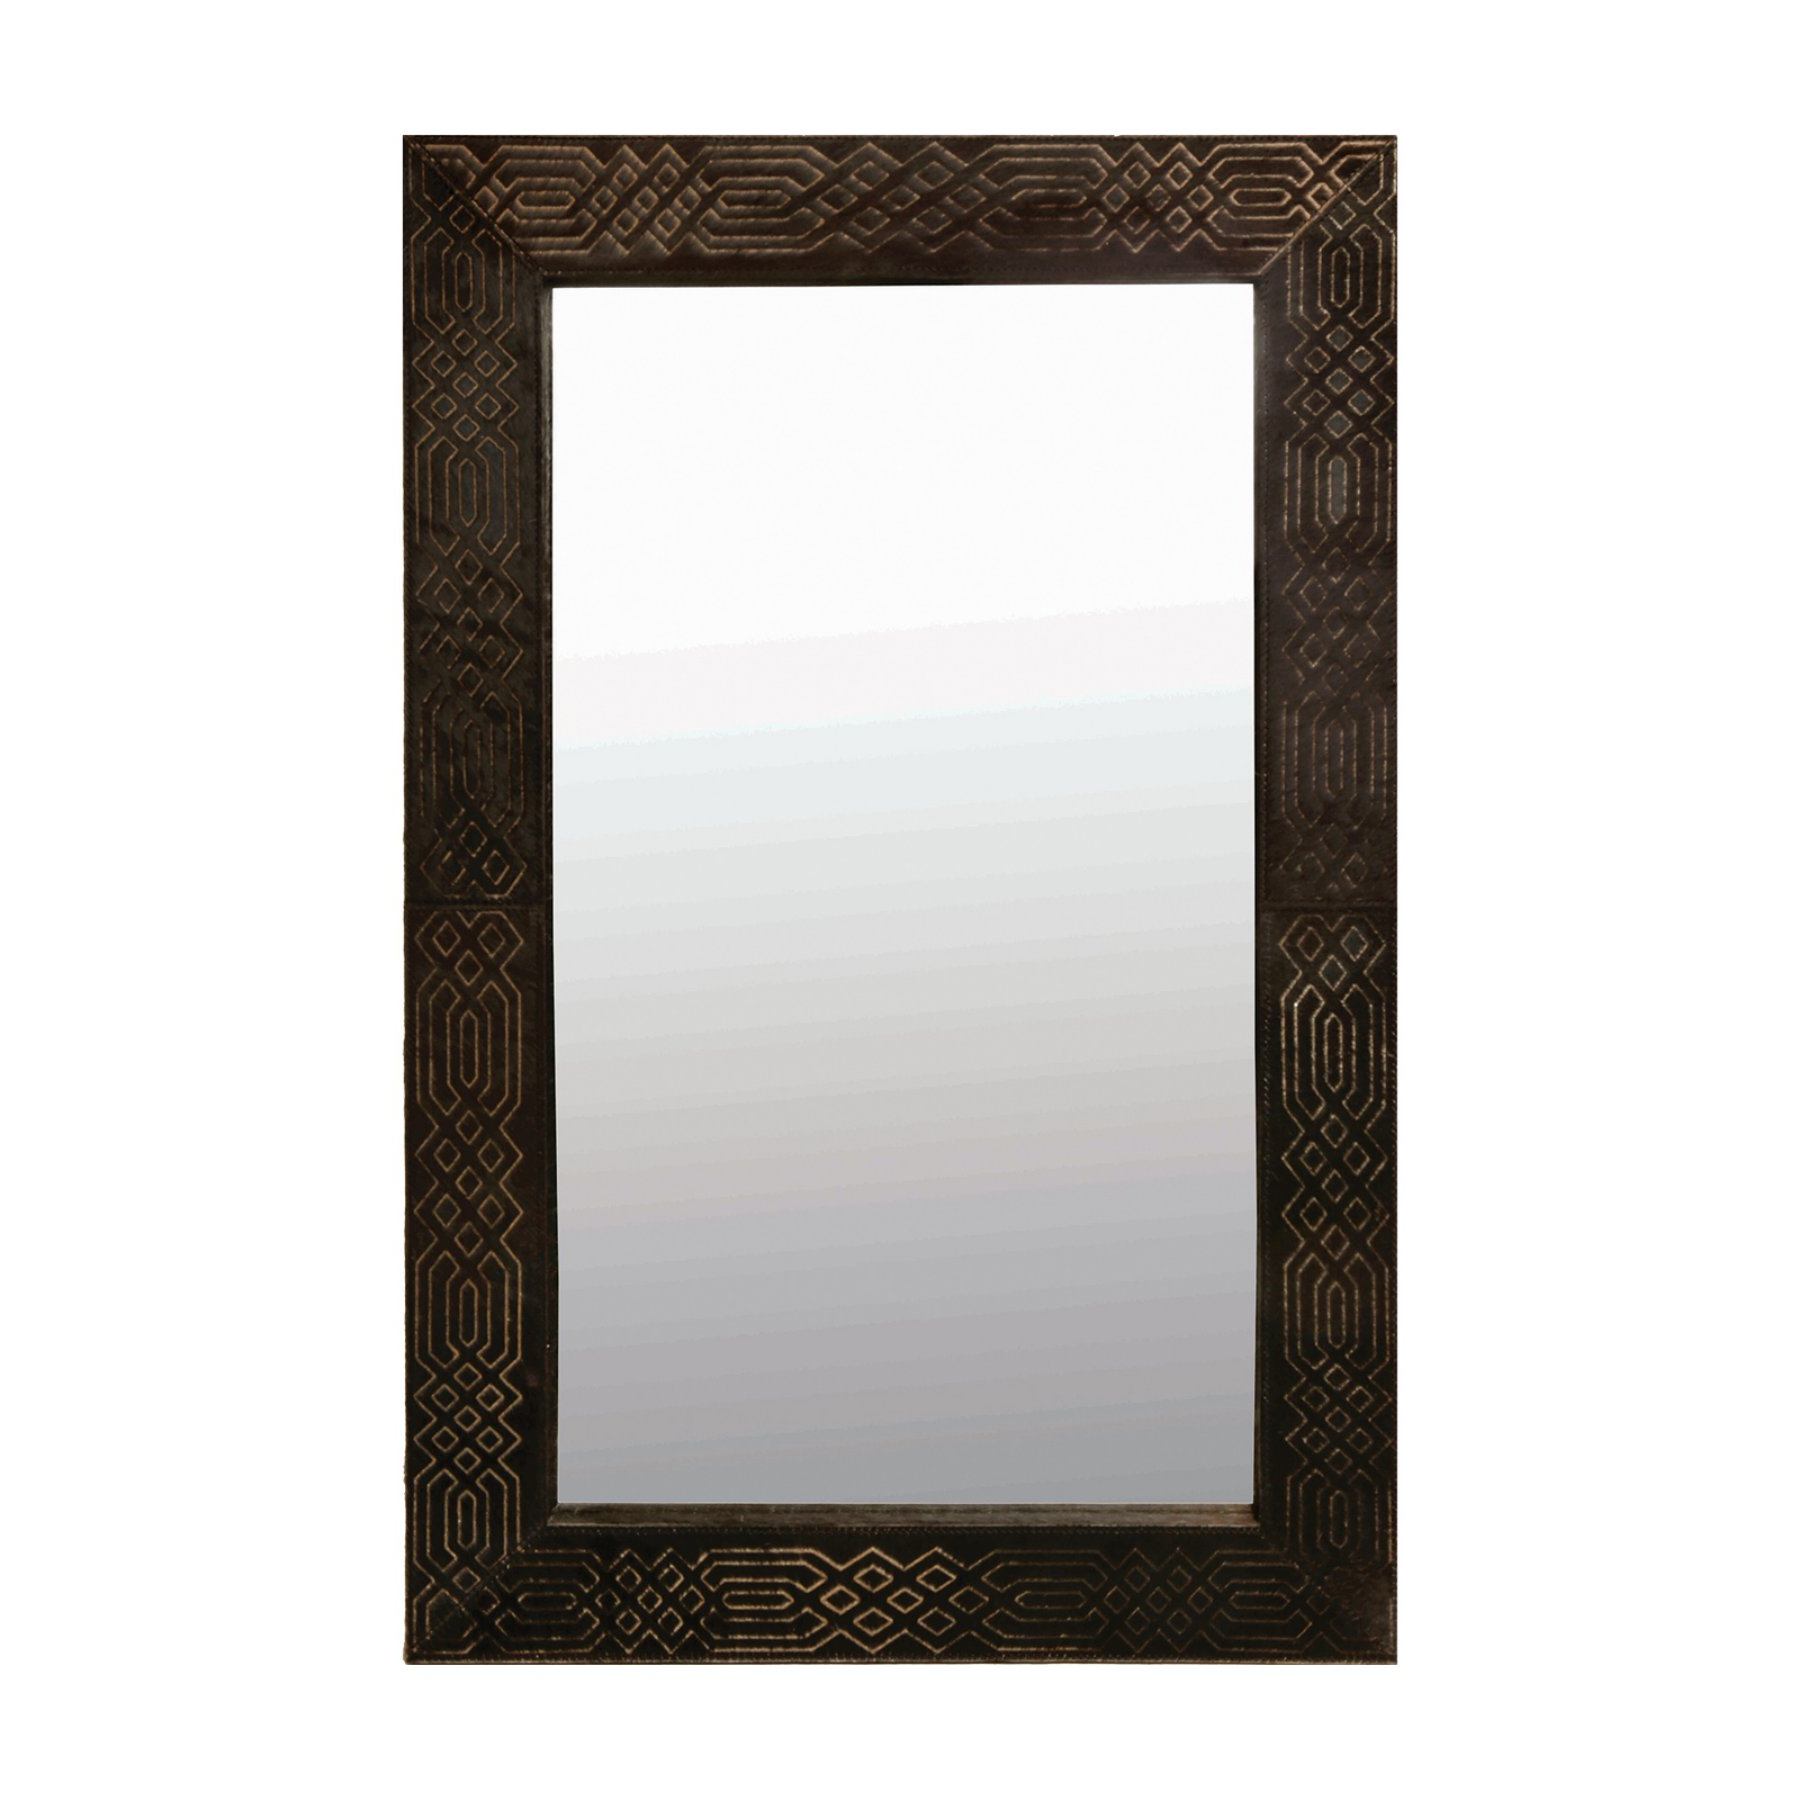 Leather Framed Wall Mirrors In Preferred Renwil Cassini Black And White Hair On Leather Framed Wall Mirror (Gallery 11 of 20)